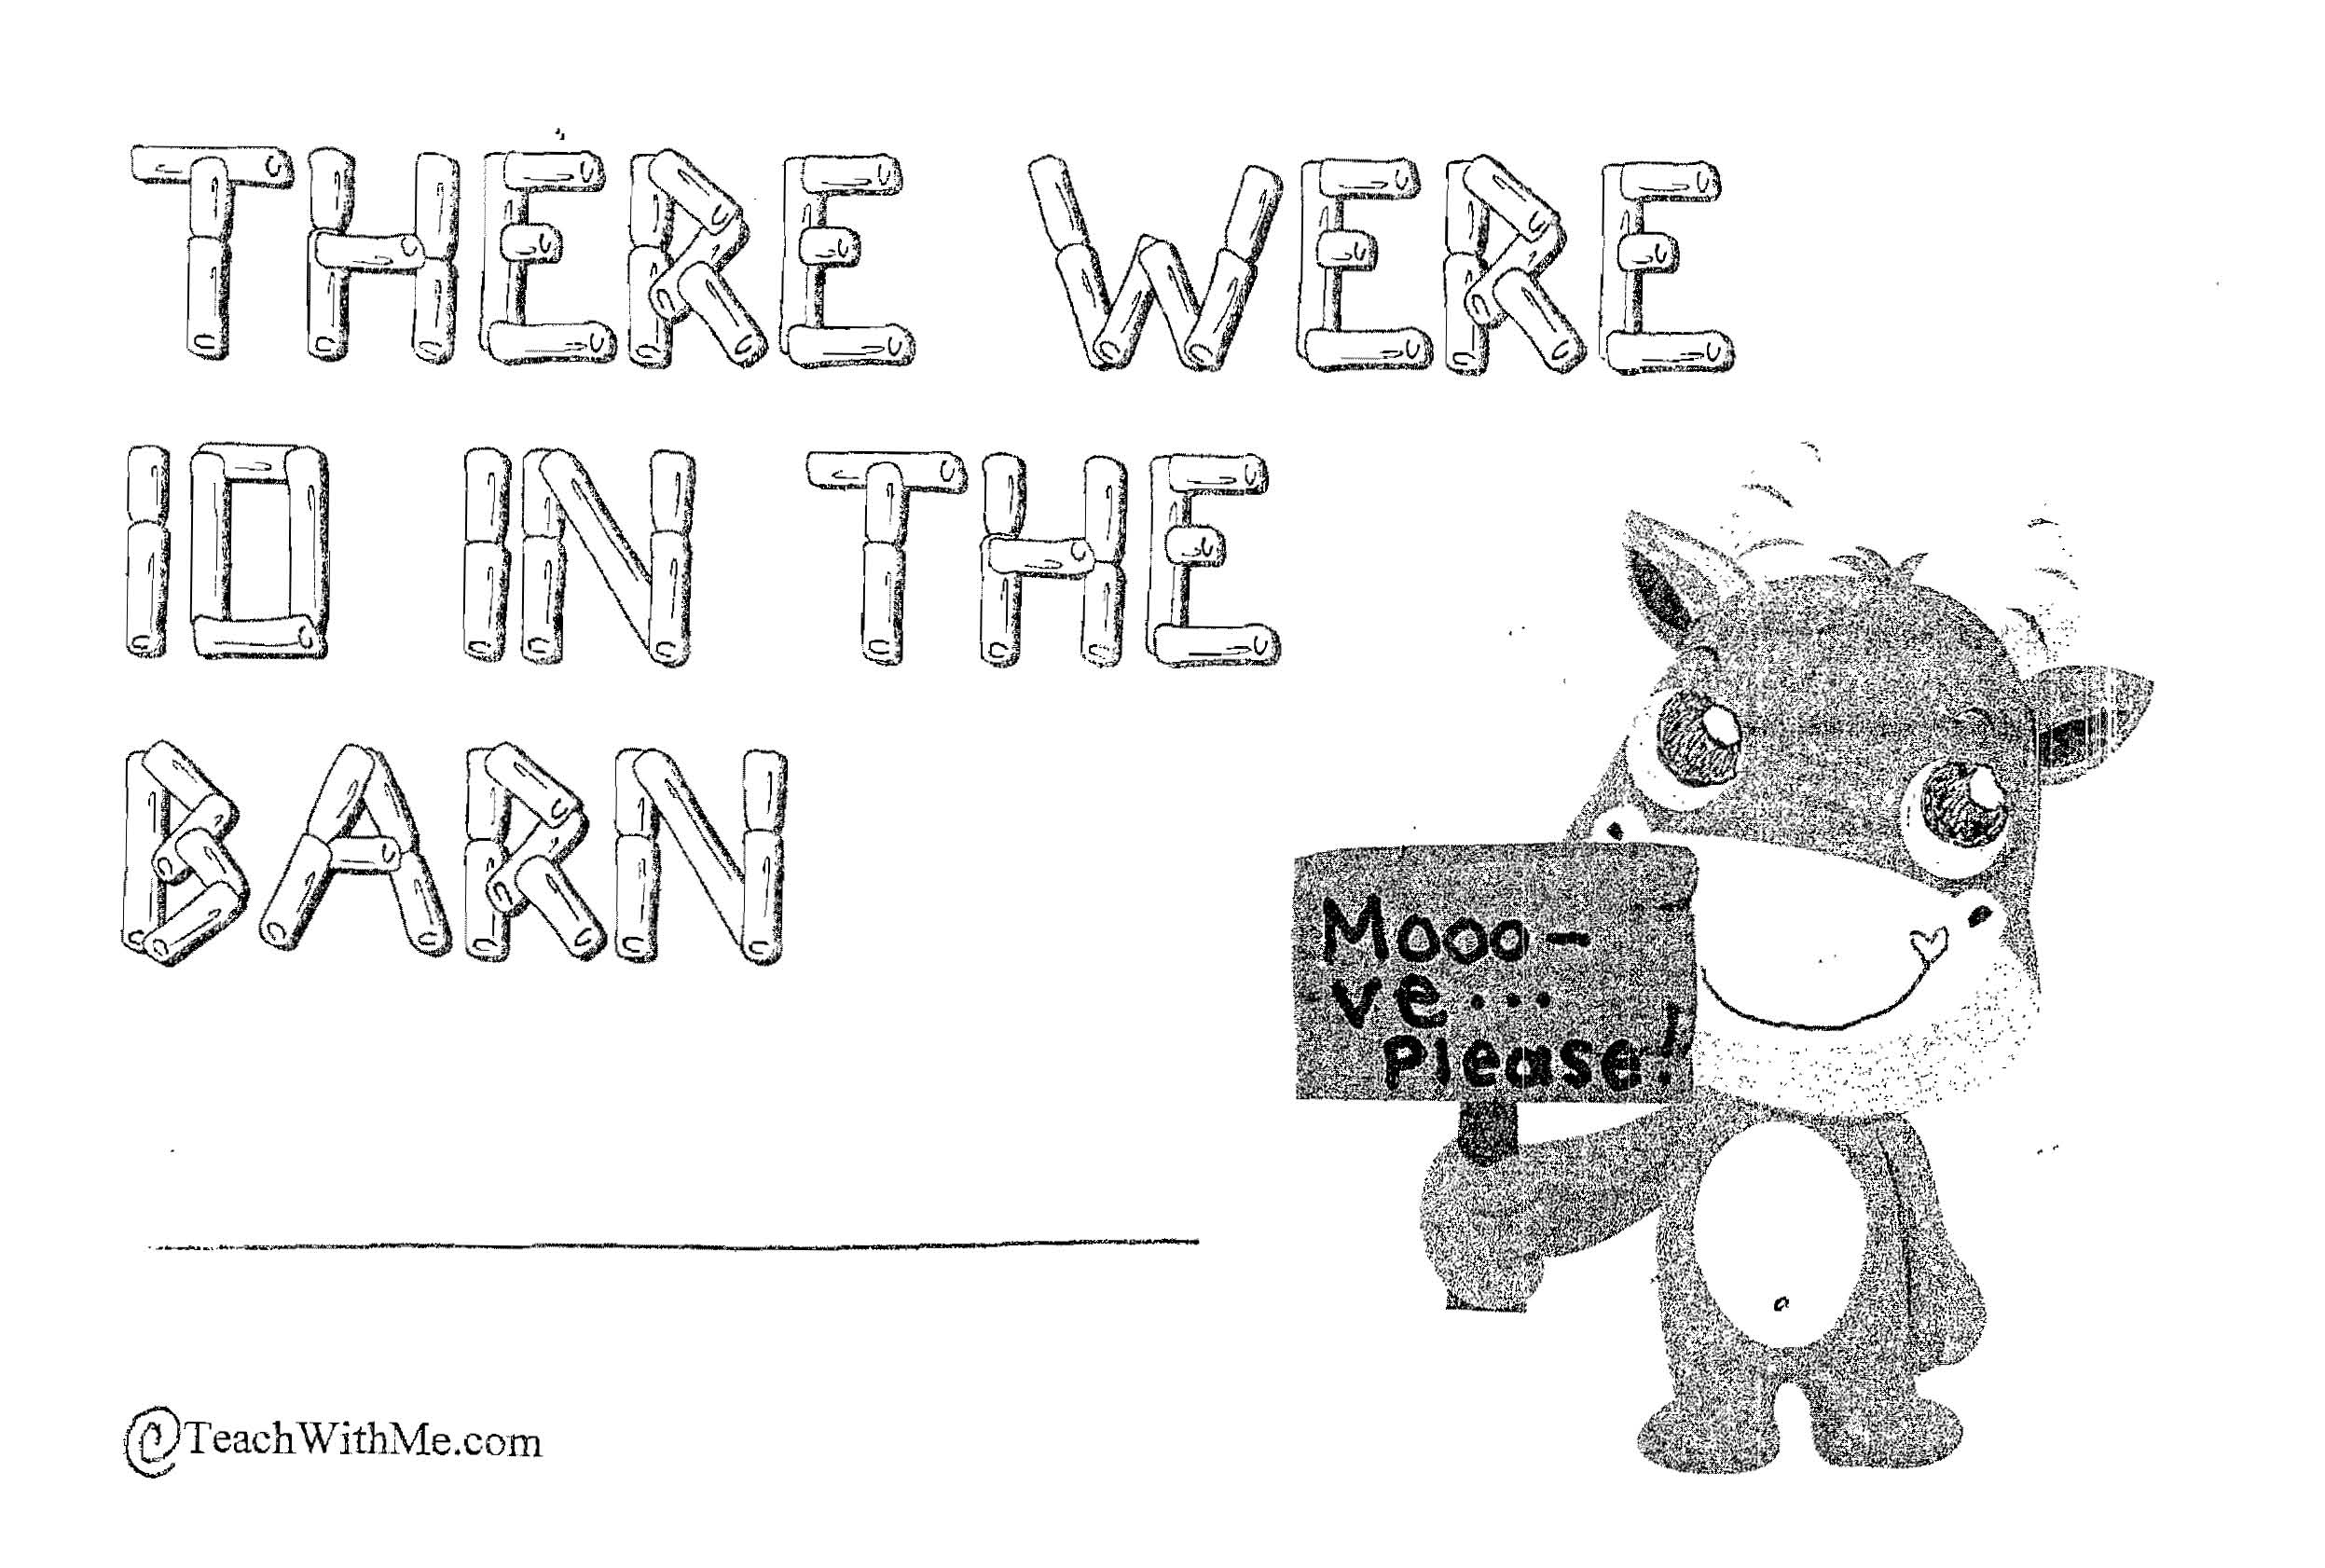 cow theme, farm theme, barnyard theme, addition activities, subtraction activities, counting activities, math booklet, counting booklet, subtraction booklet, addition booklet, animal booklet, farm booklet, easy reader booklet, farm animal lessons, farm animal ideas, farm animal lessons, counting lessons, additon lessons, subtraction lessons, math centers for early elementary, farm centers,